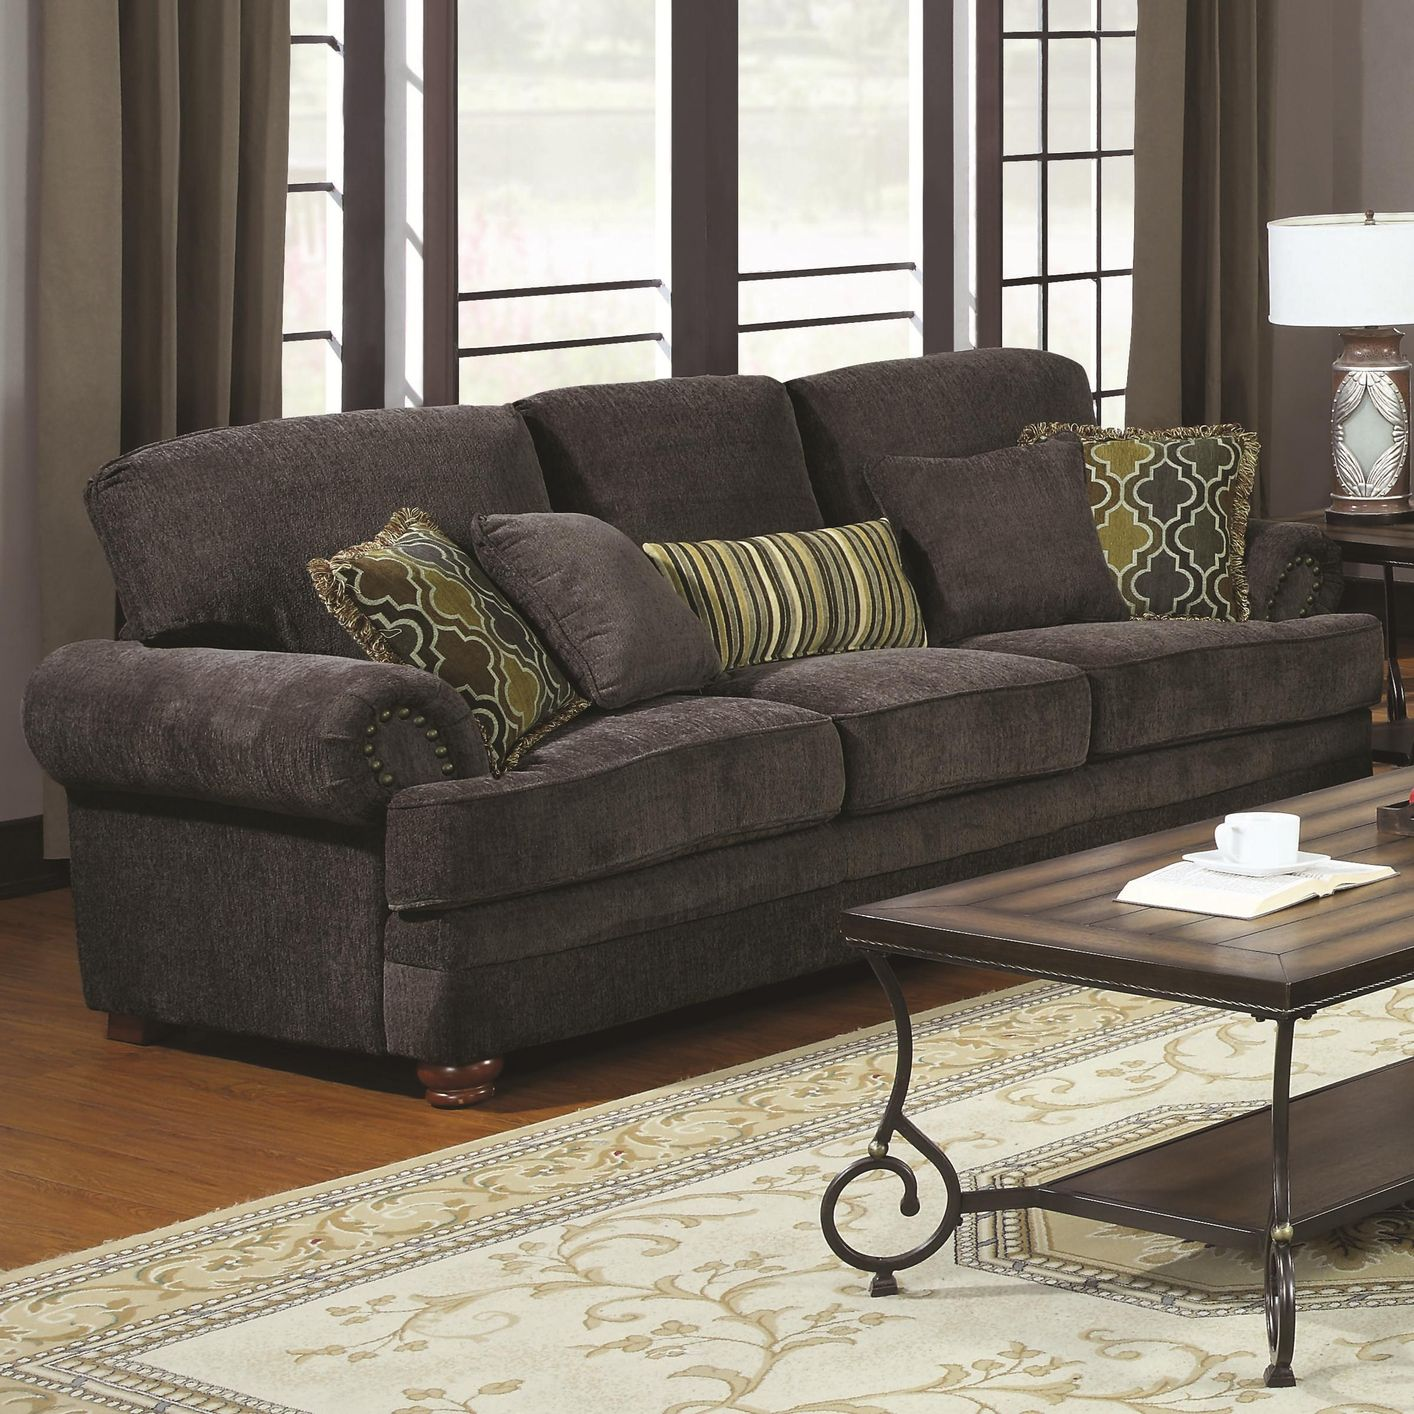 Hi we have open plan new home and please help me to choose pillow colors for my black leather sofa n loveseat, our living room area rug is silver grey with dark. Grey Fabric Sofa - Steal-A-Sofa Furniture Outlet Los ...